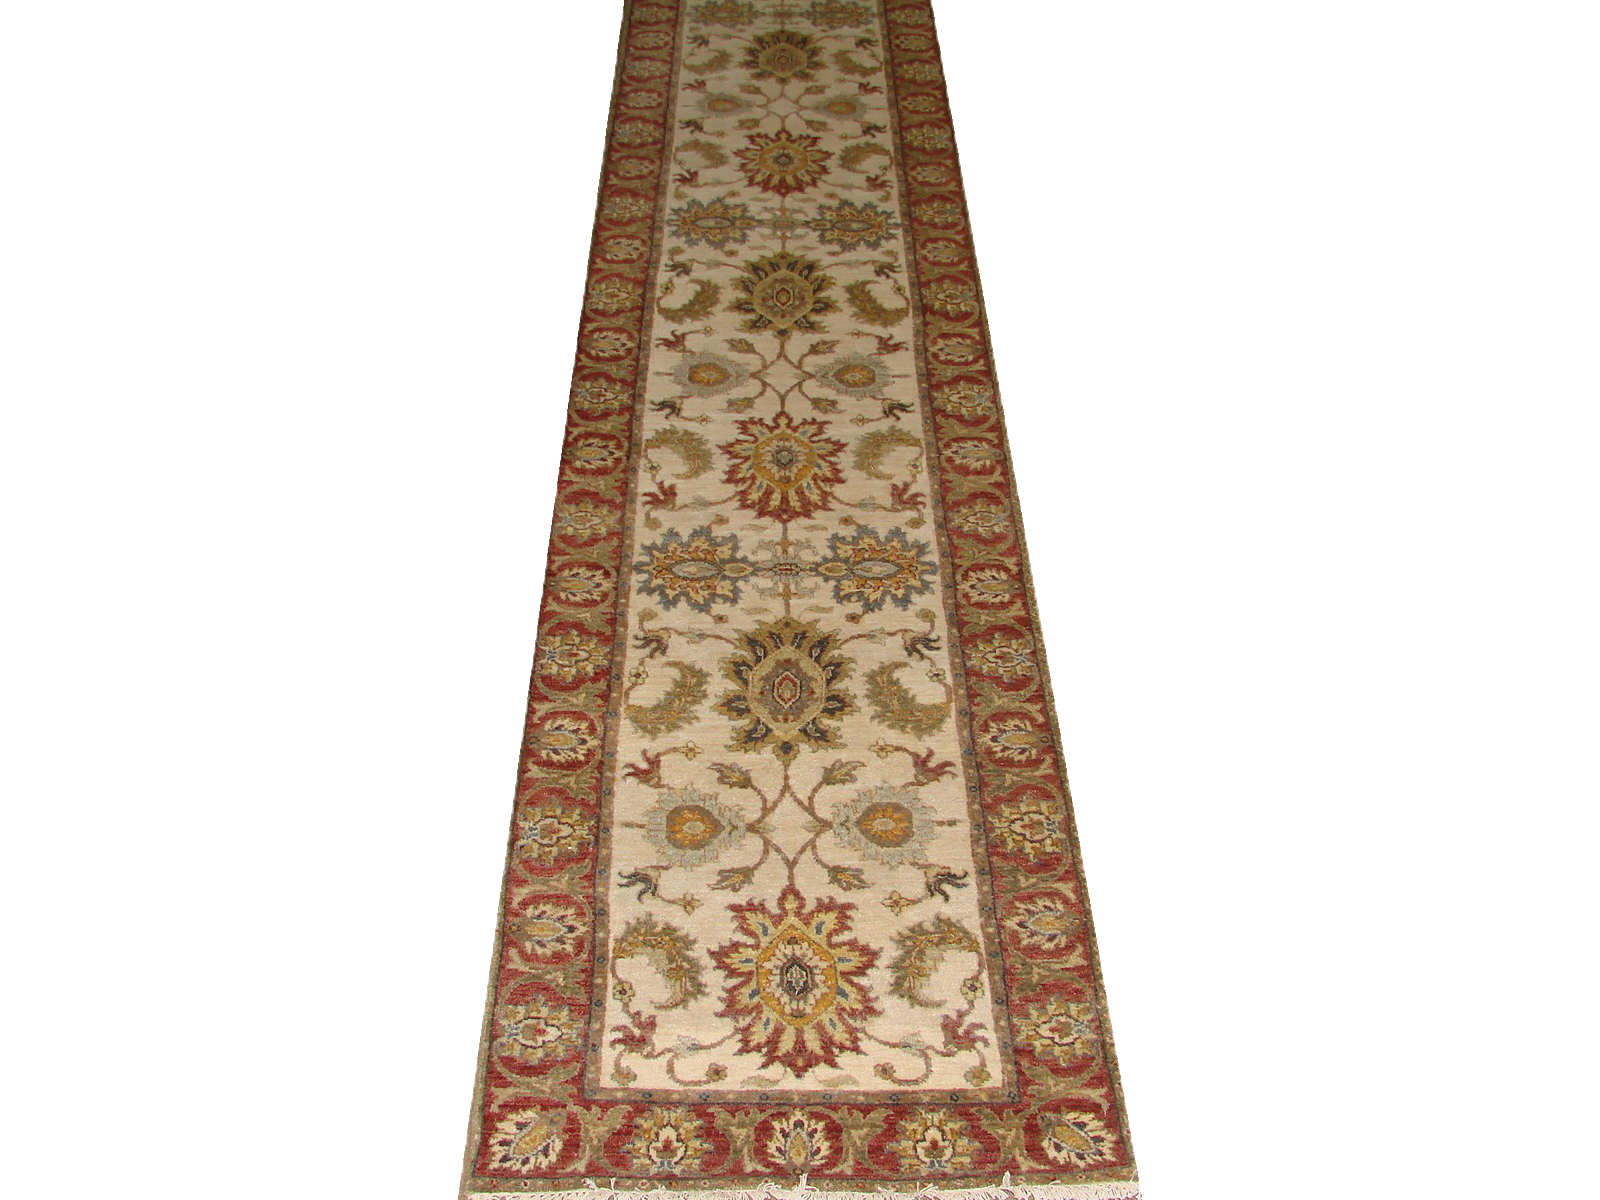 13 & Longer Runner Traditional Hand Knotted Wool Area Rug - MR20948